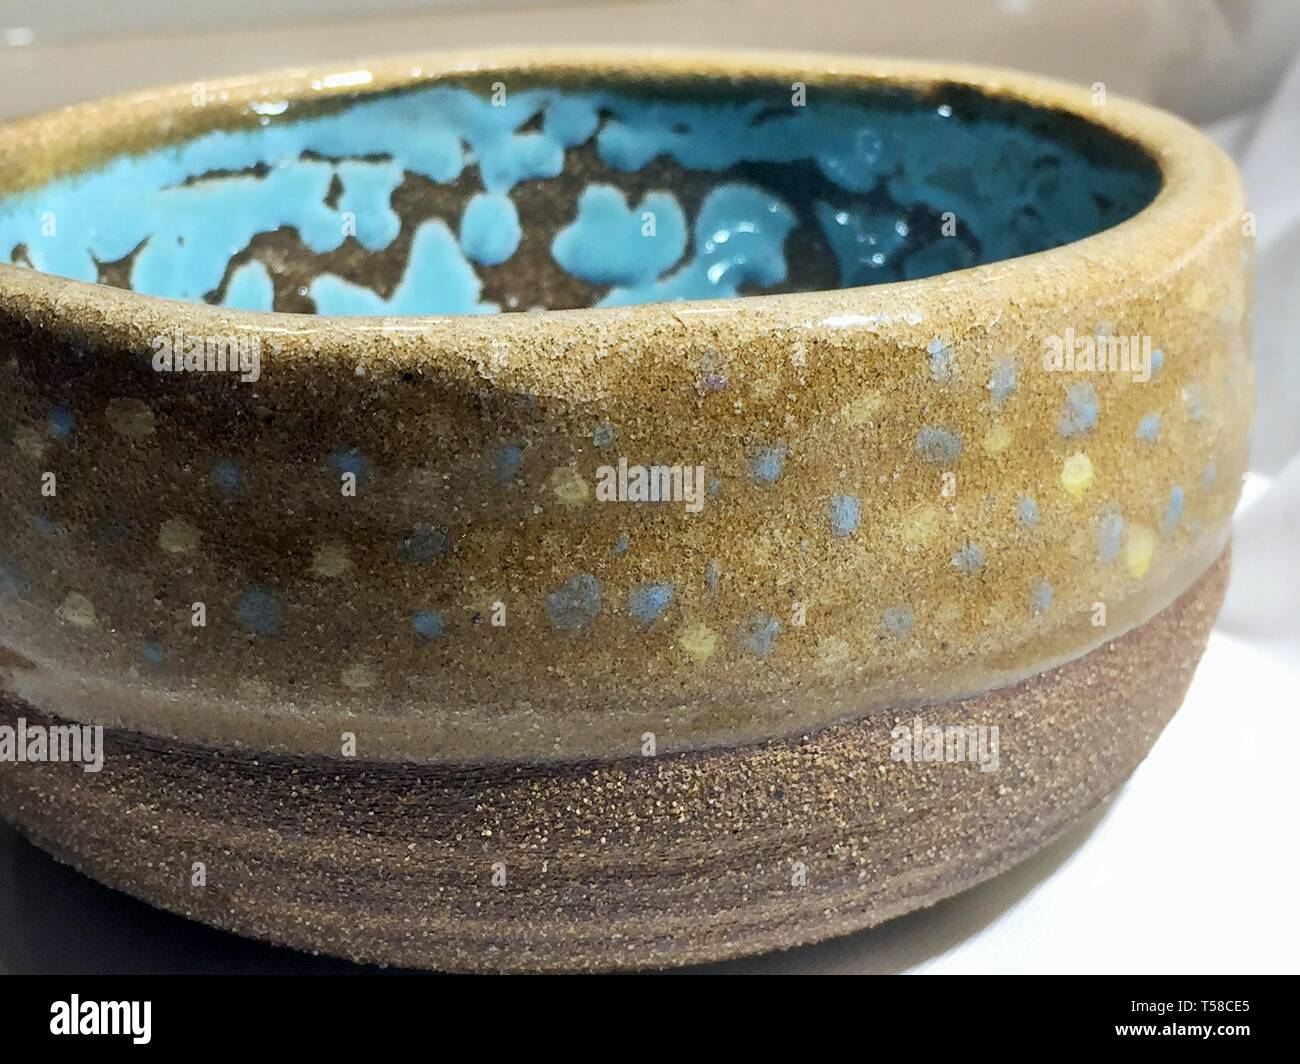 Handmade pottery from a local artist, fired to cone 10 and glazed with food-safe glazes - Stock Image